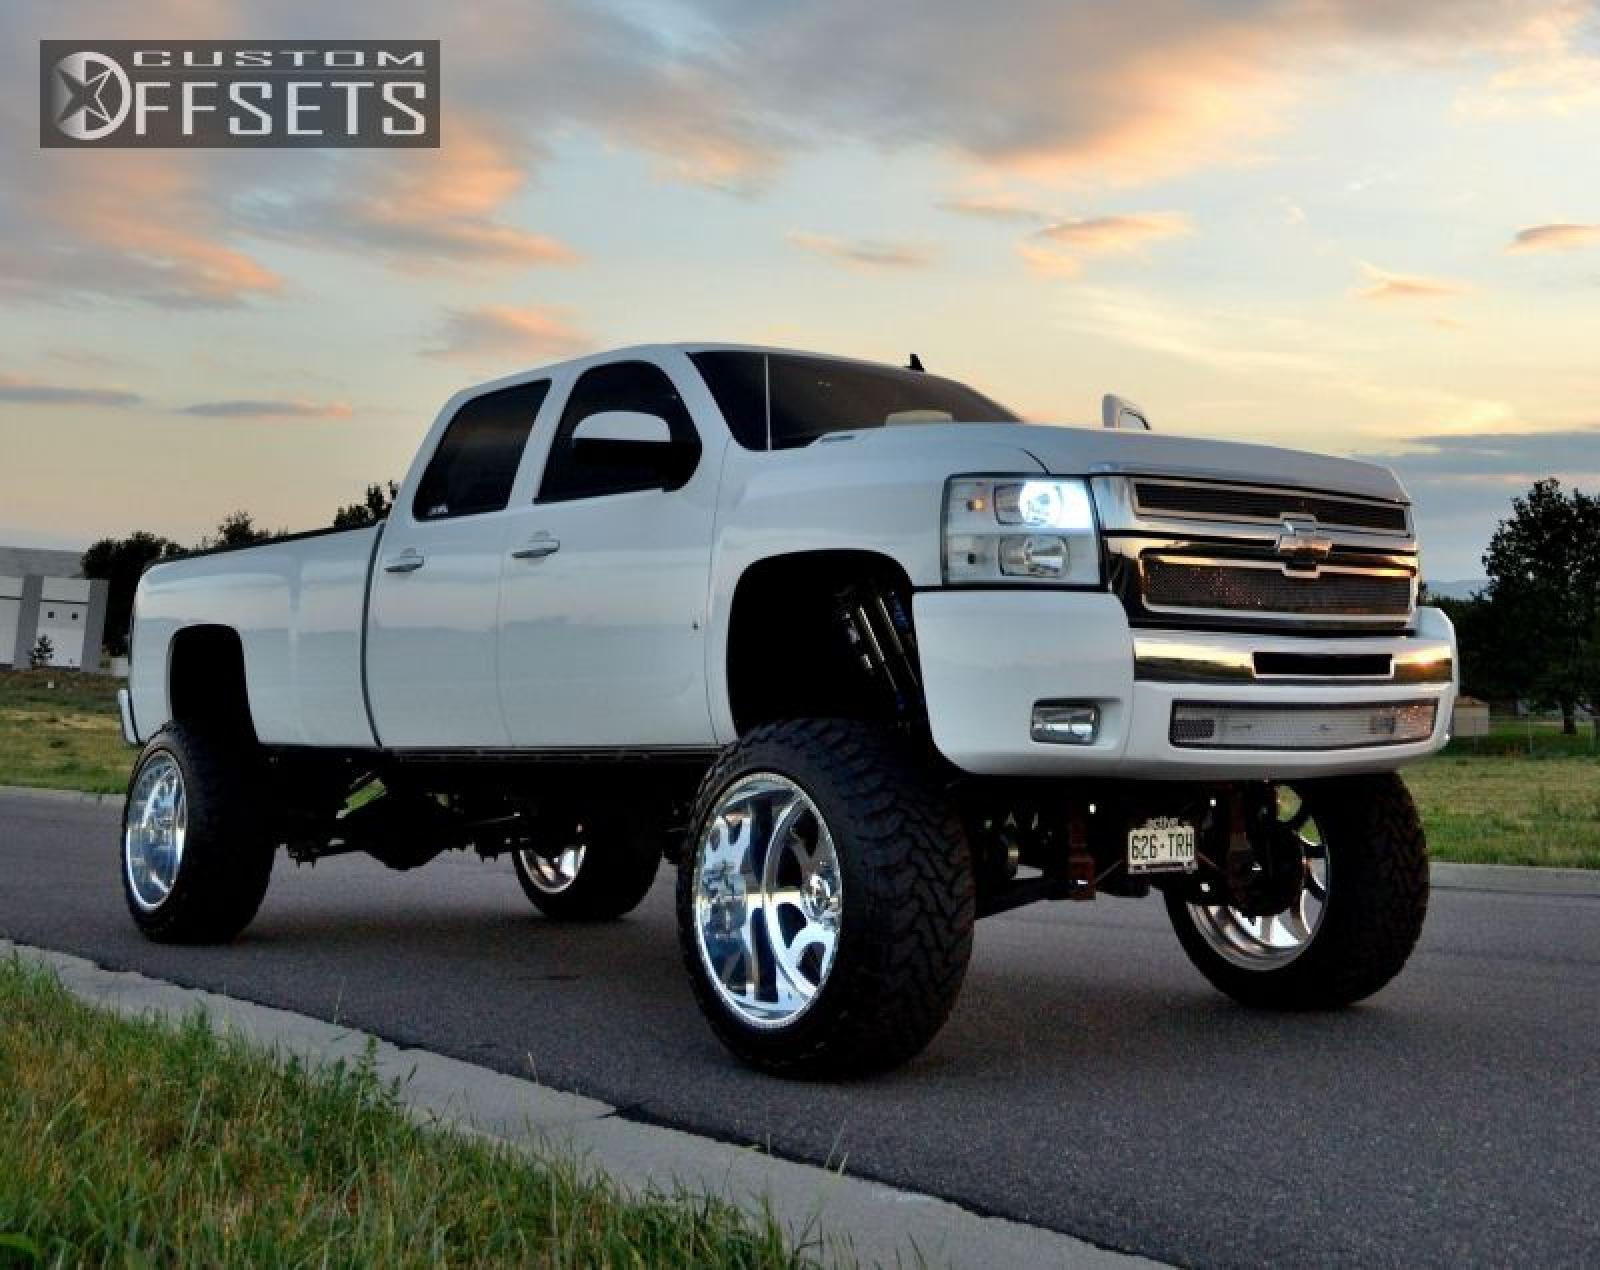 2008 Chevrolet Silverado 3500hd Photos Informations Articles Big Blue Jacked Up Chevy Truck 12